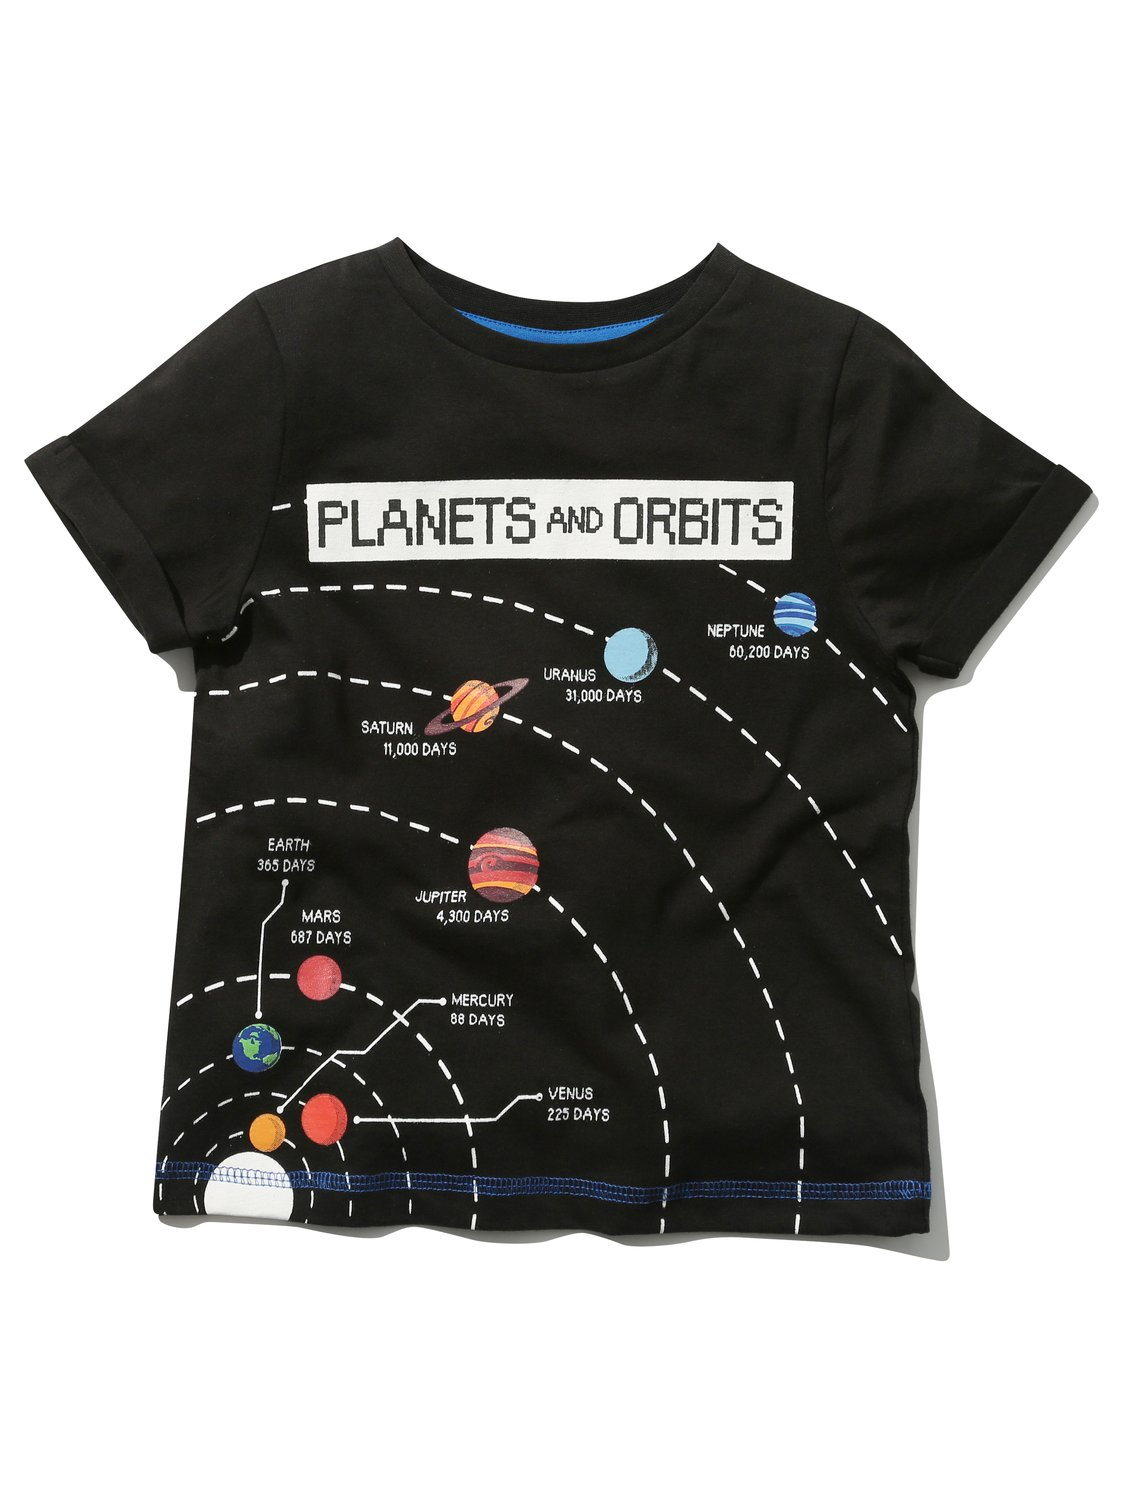 Science Museum kids black 100% cotton short sleeve crew neck planets & orbits fact print t-shirt - Black